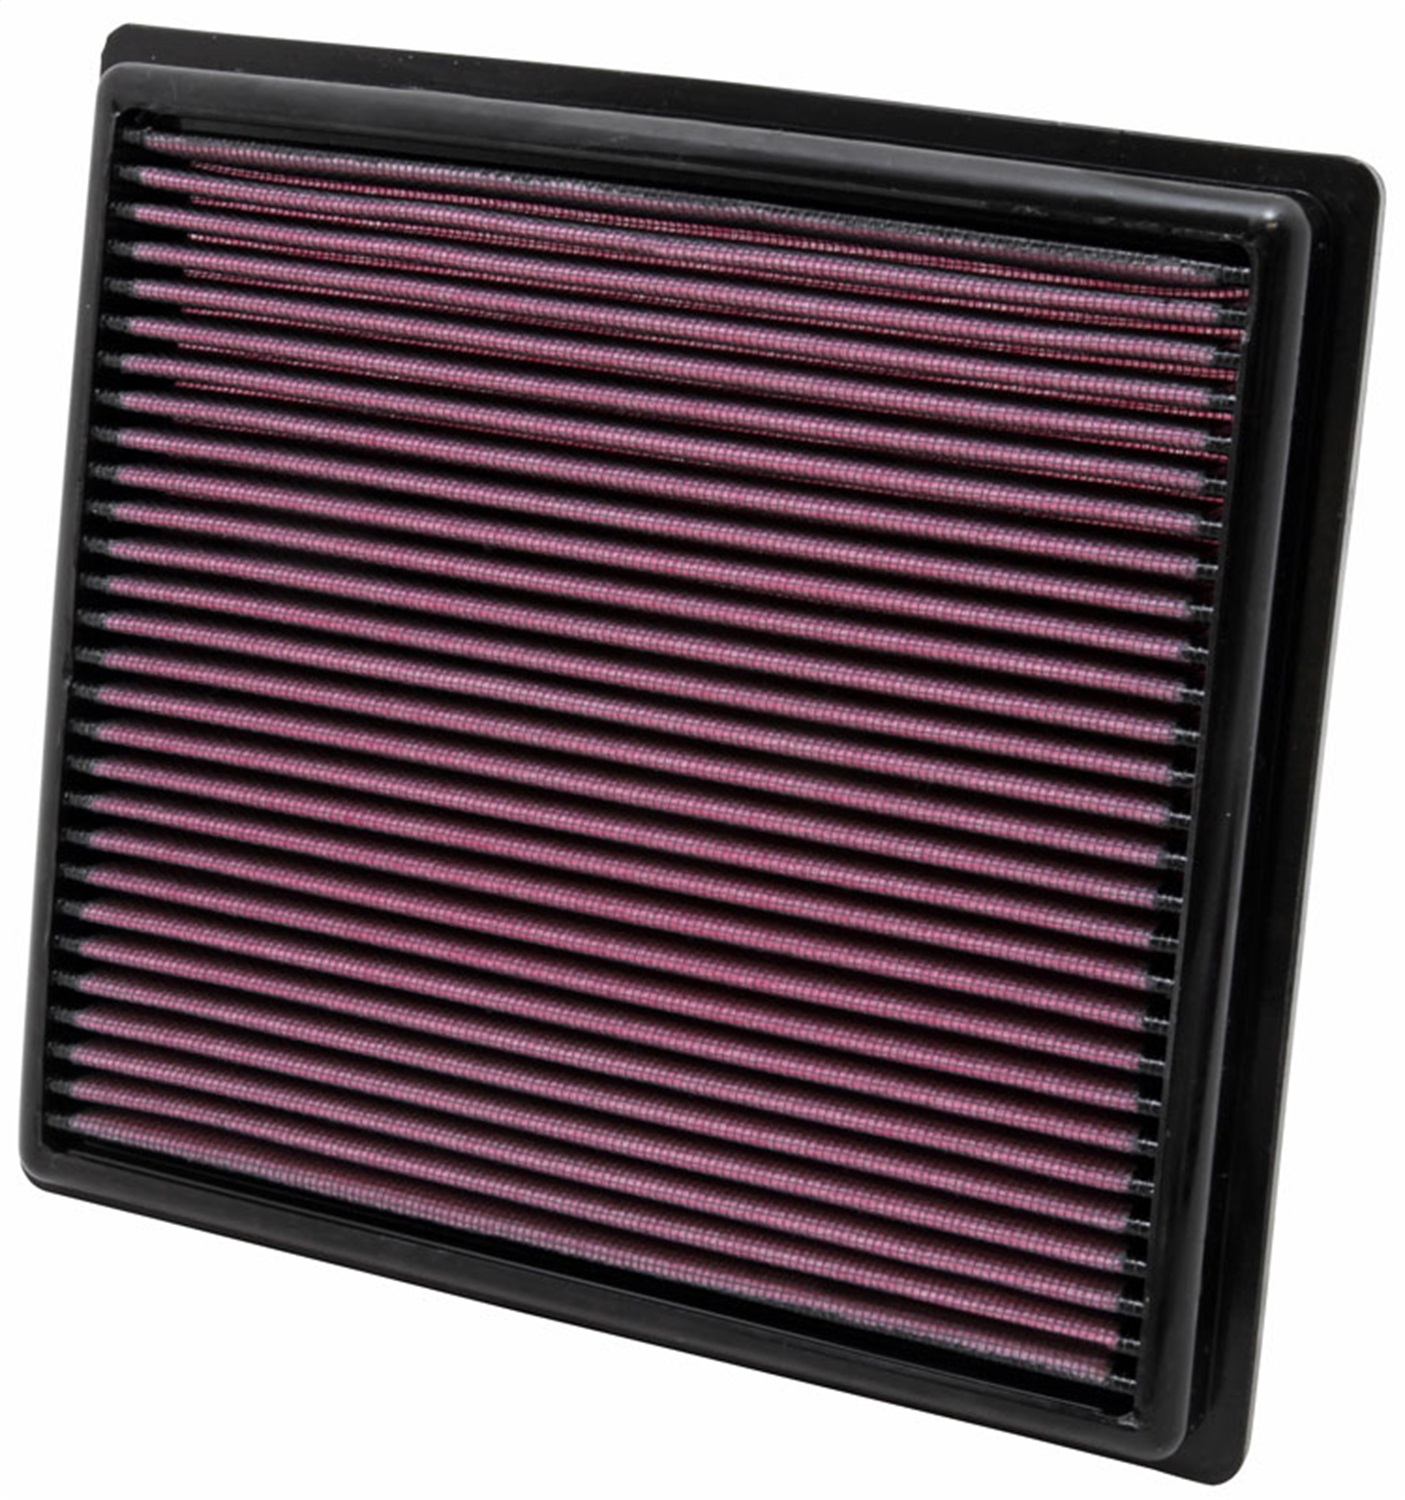 K&N Filters 33-2443 Air Filter Fits Avalon Camry ES350 Highlander RX350 Sienna 33-2443